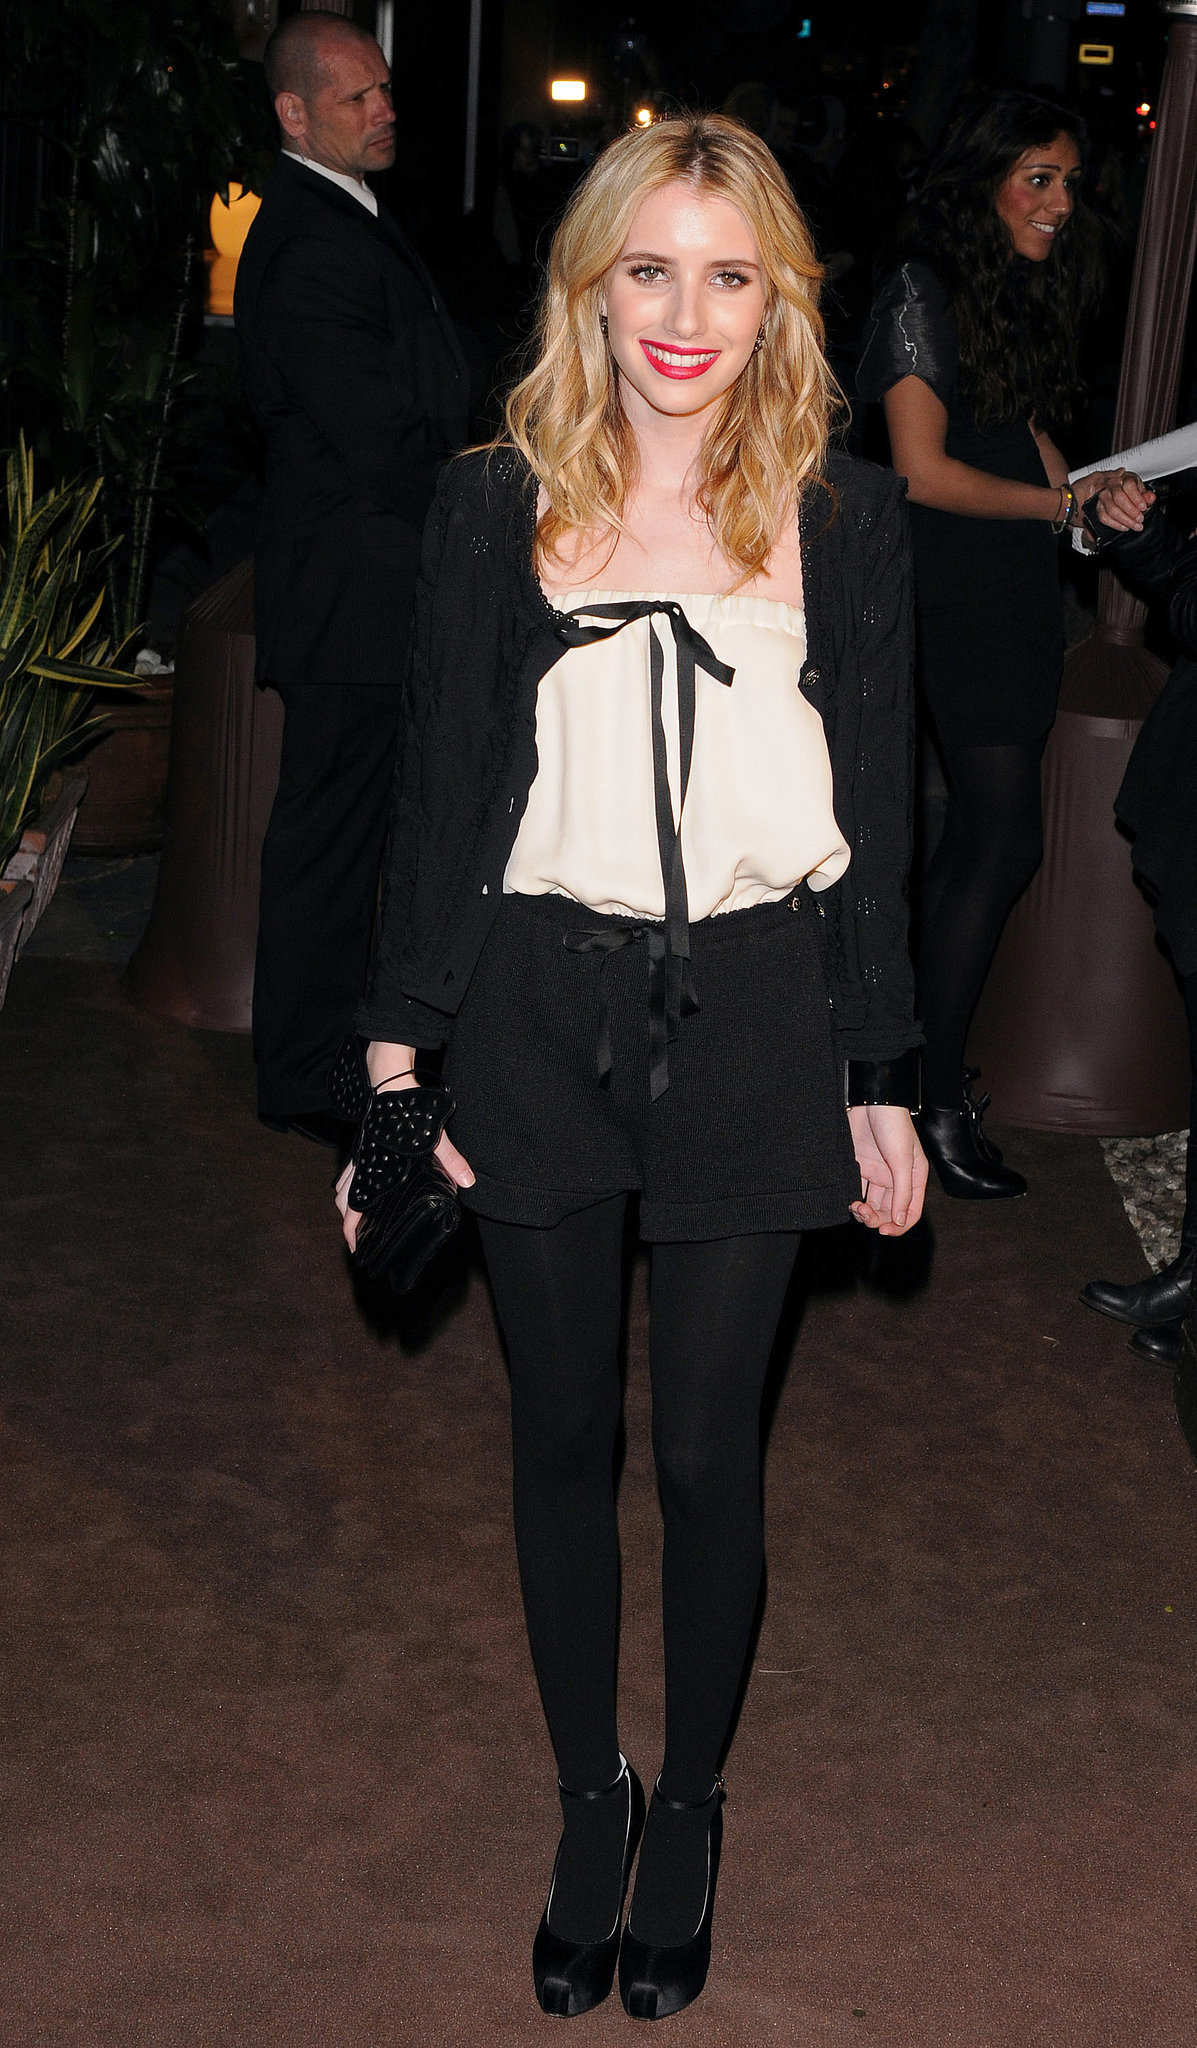 Emma punched up her menswear-inspired Chanel style with a red lip for an LA event in 2011.